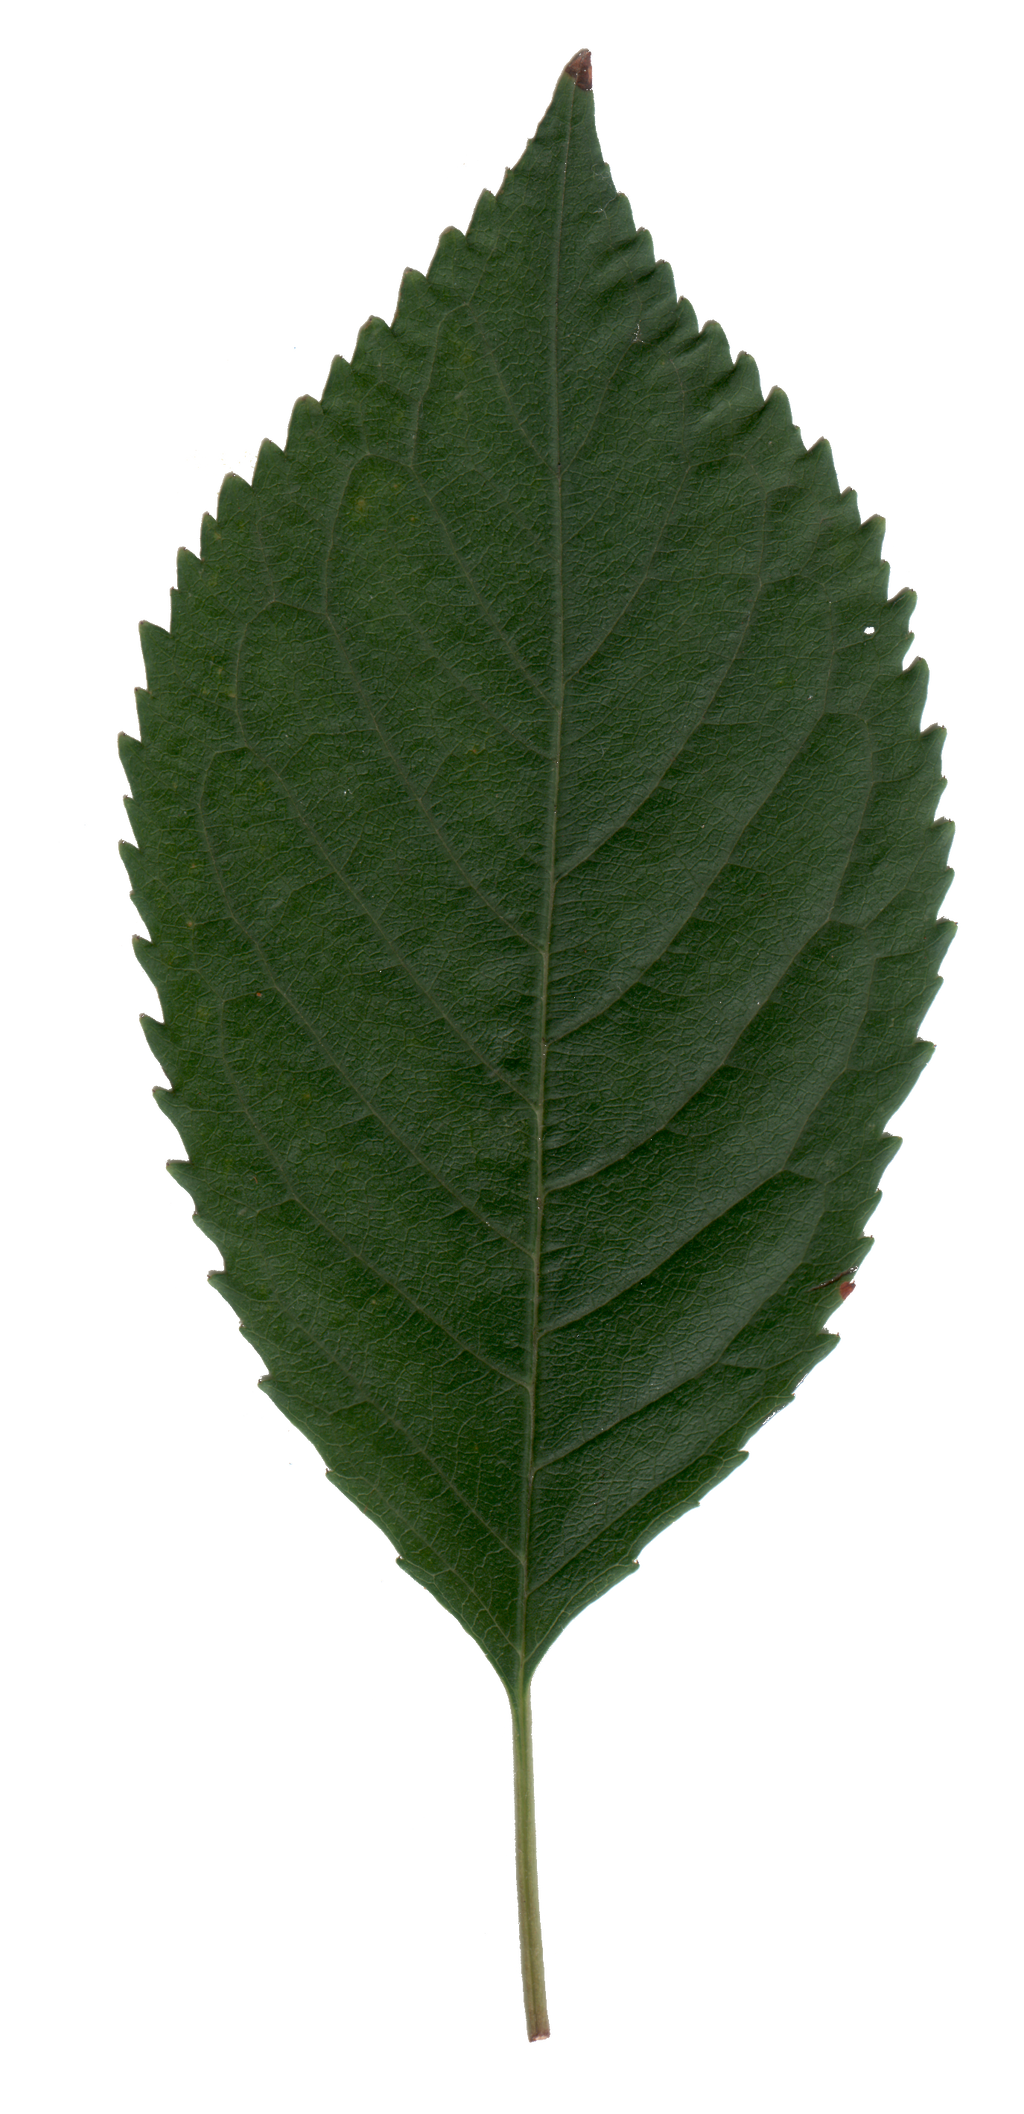 Cherry Leaf by BrianHanson2nd on DeviantArt